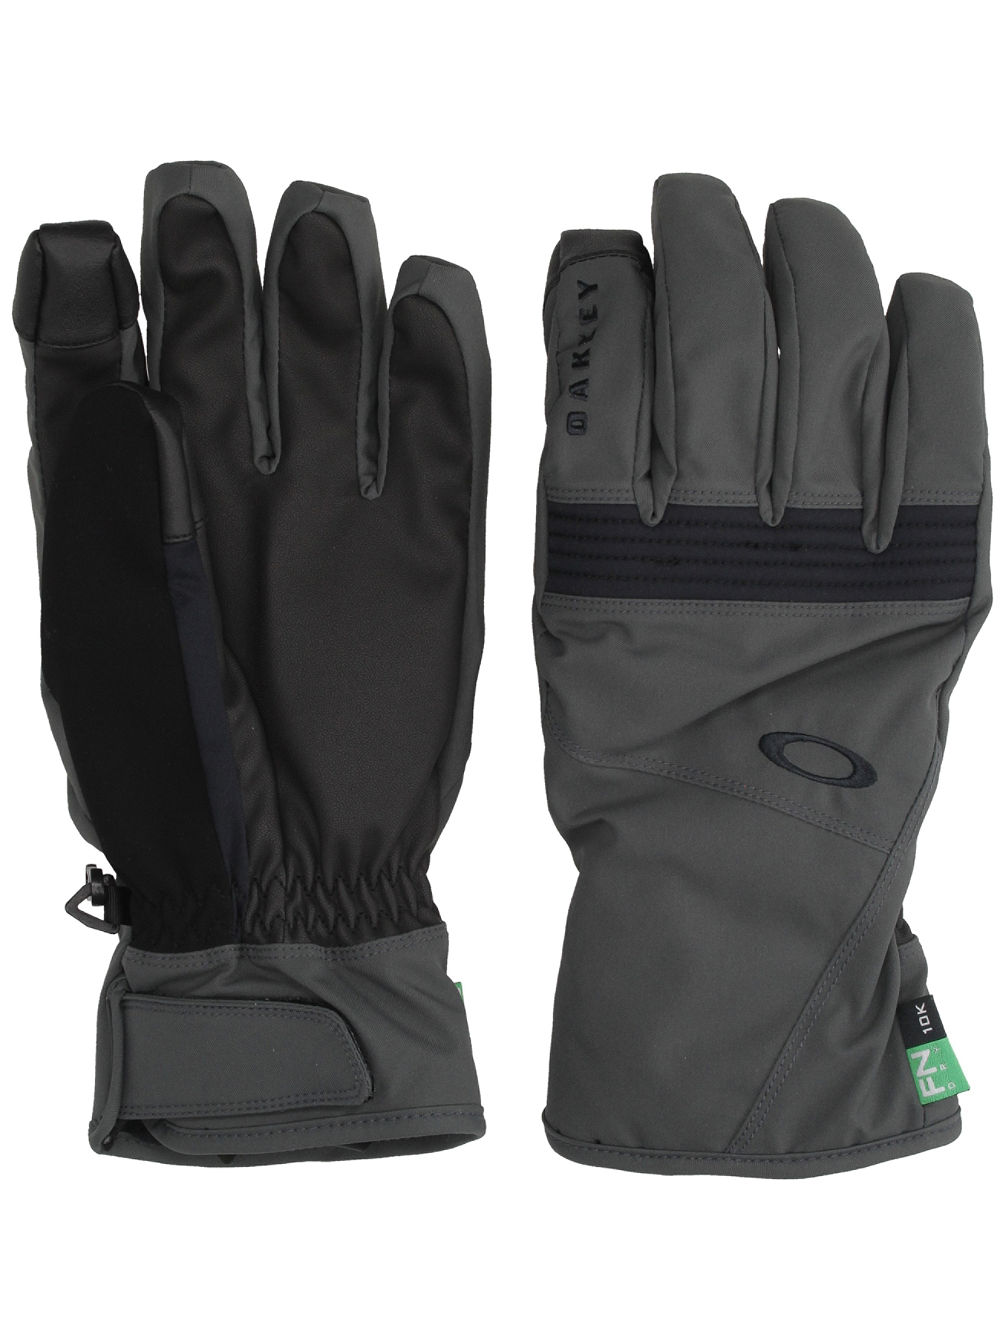 Roundhouse Short 2.5 Gloves